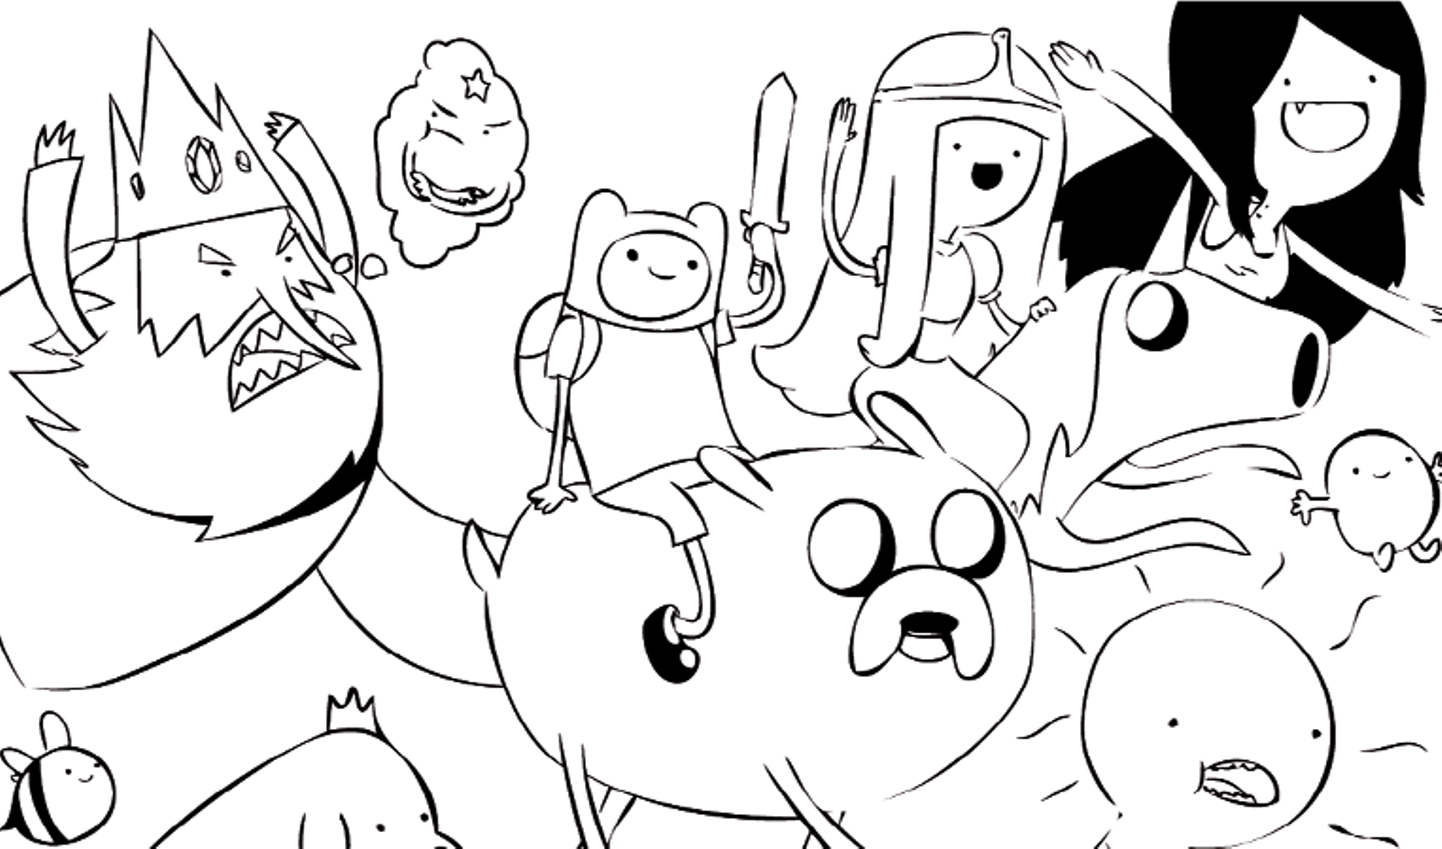 adventure-time coloring pages printable,printable,coloring pages